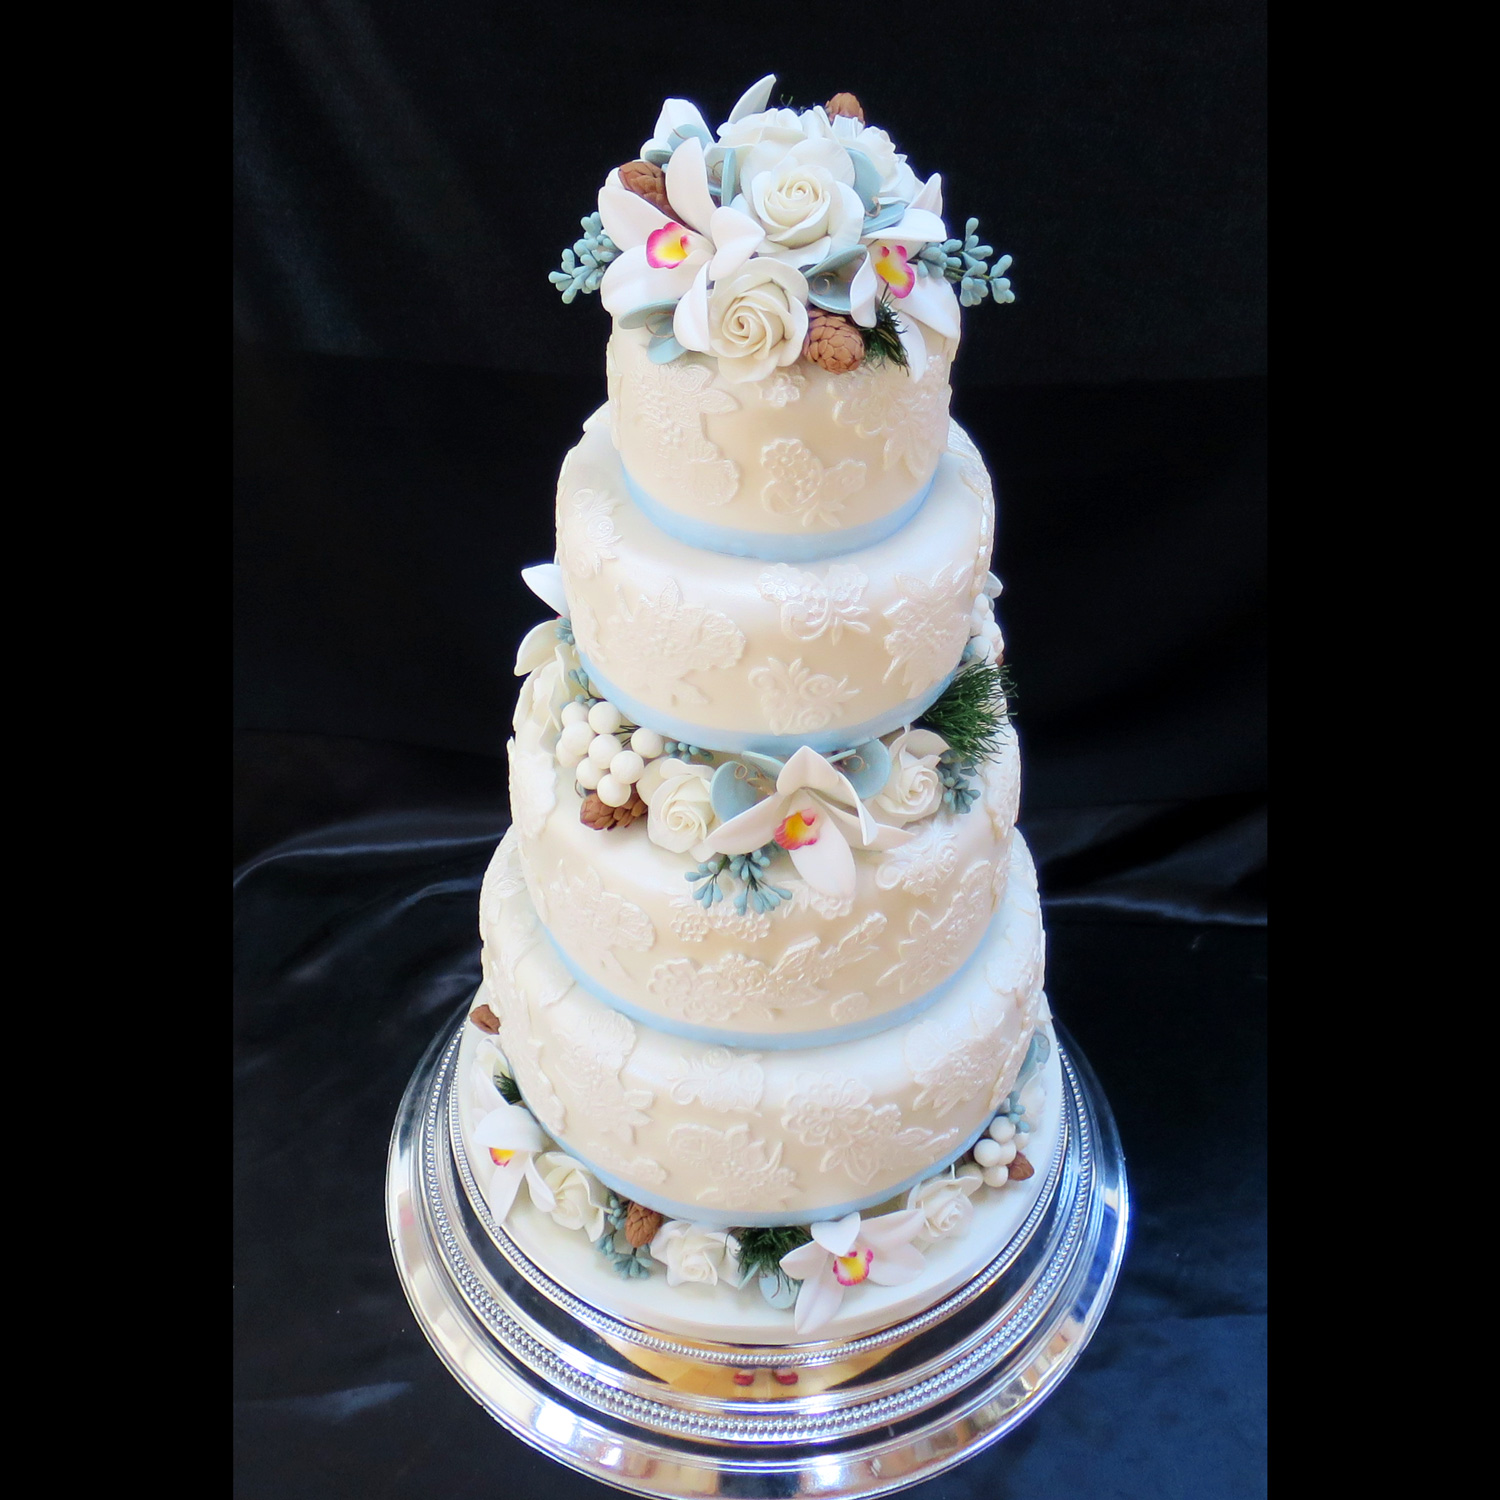 Floral wedding cakes floral wedding cakes and cakes with sugar roses lace covered wedding cake izmirmasajfo